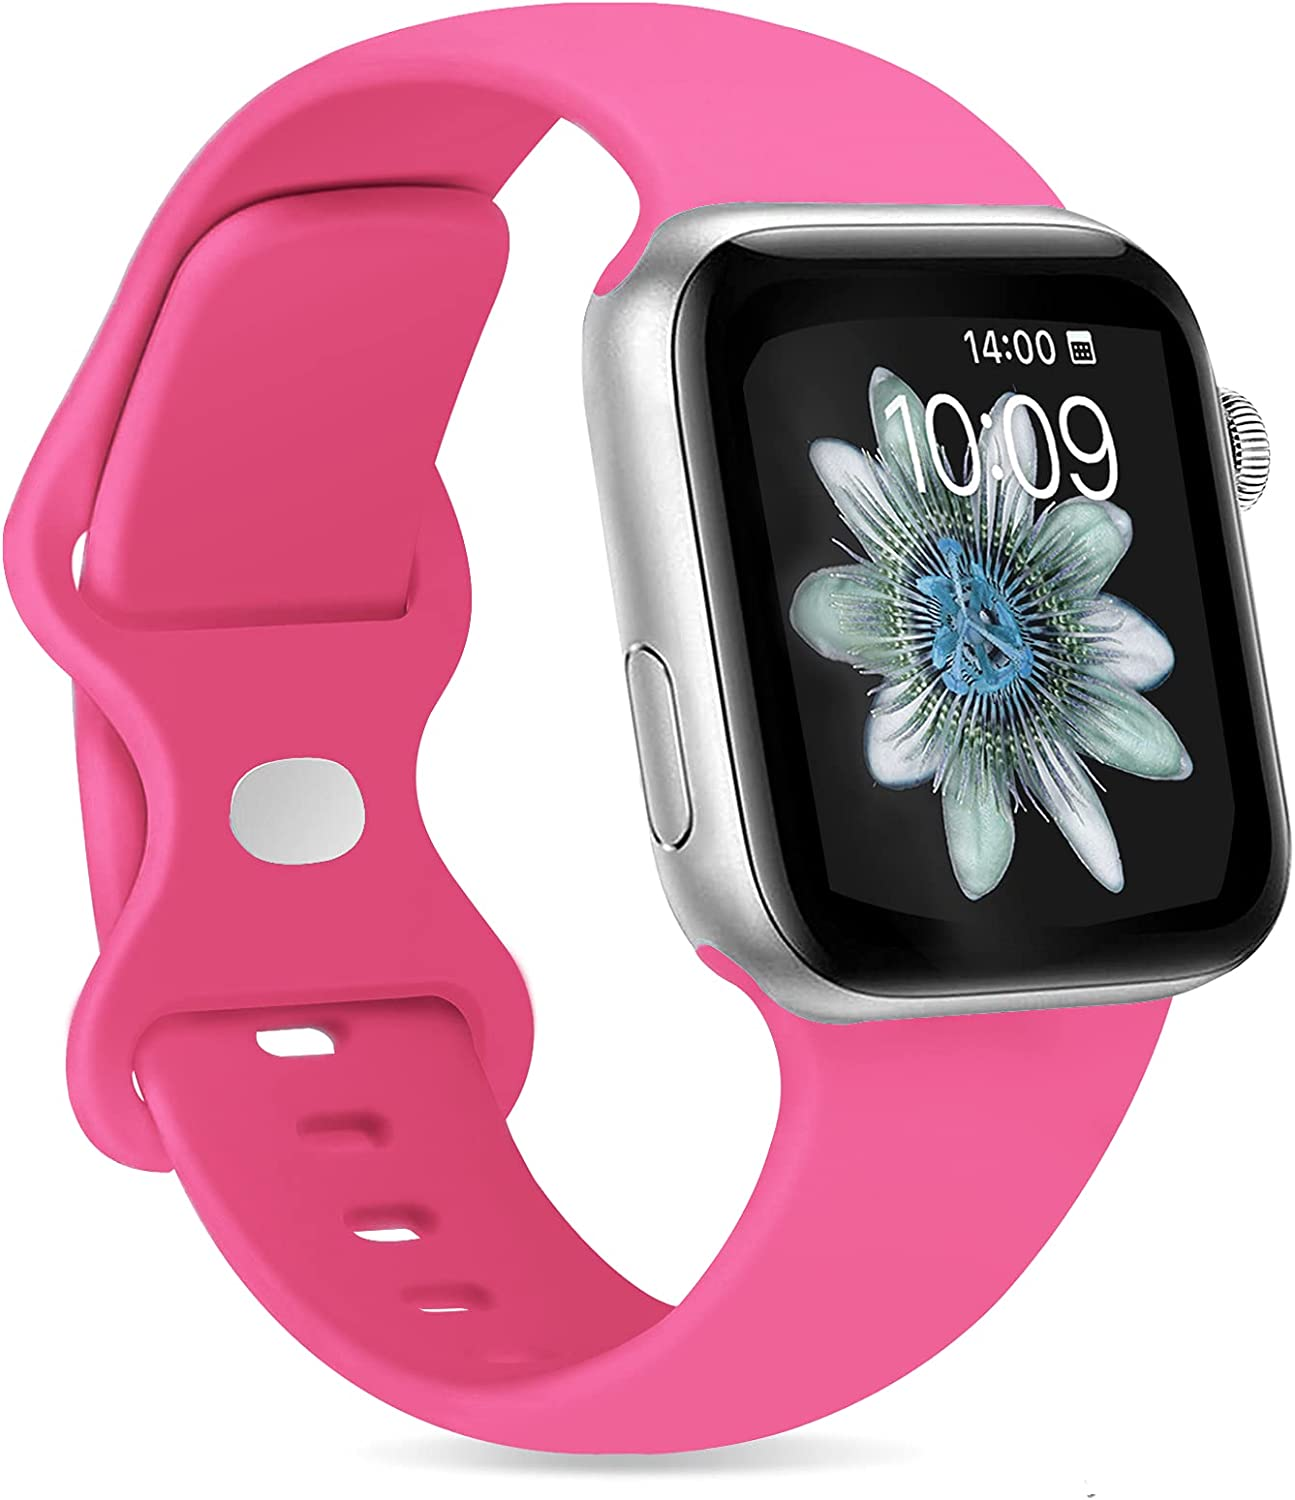 PNCHEN Sport Band Compatible with Apple Watch Bands 38mm 40mm 42mm 44mm Soft Silicone Strap Wristbands for iWatch Series 6 5 4 3 2 1 SE Women Men